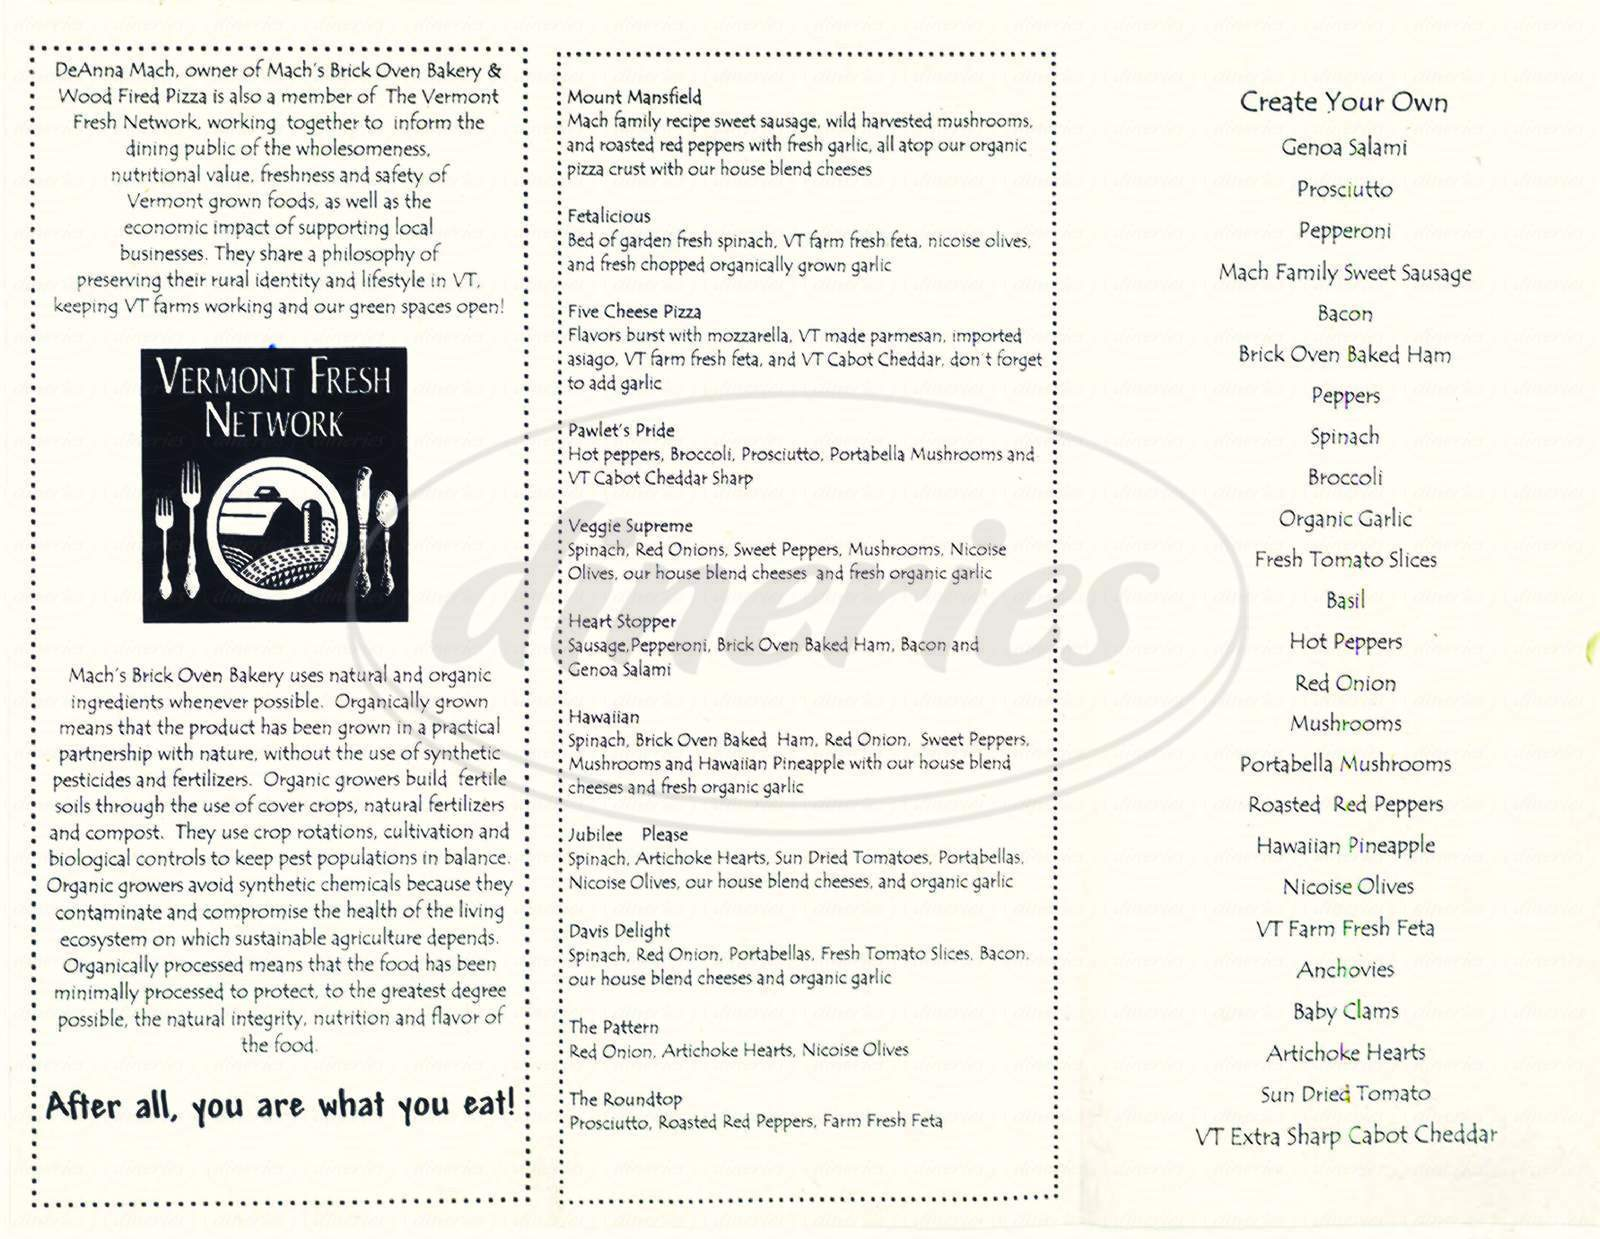 menu for Mach's Brick Oven Bakery & Wood Fired Pizza